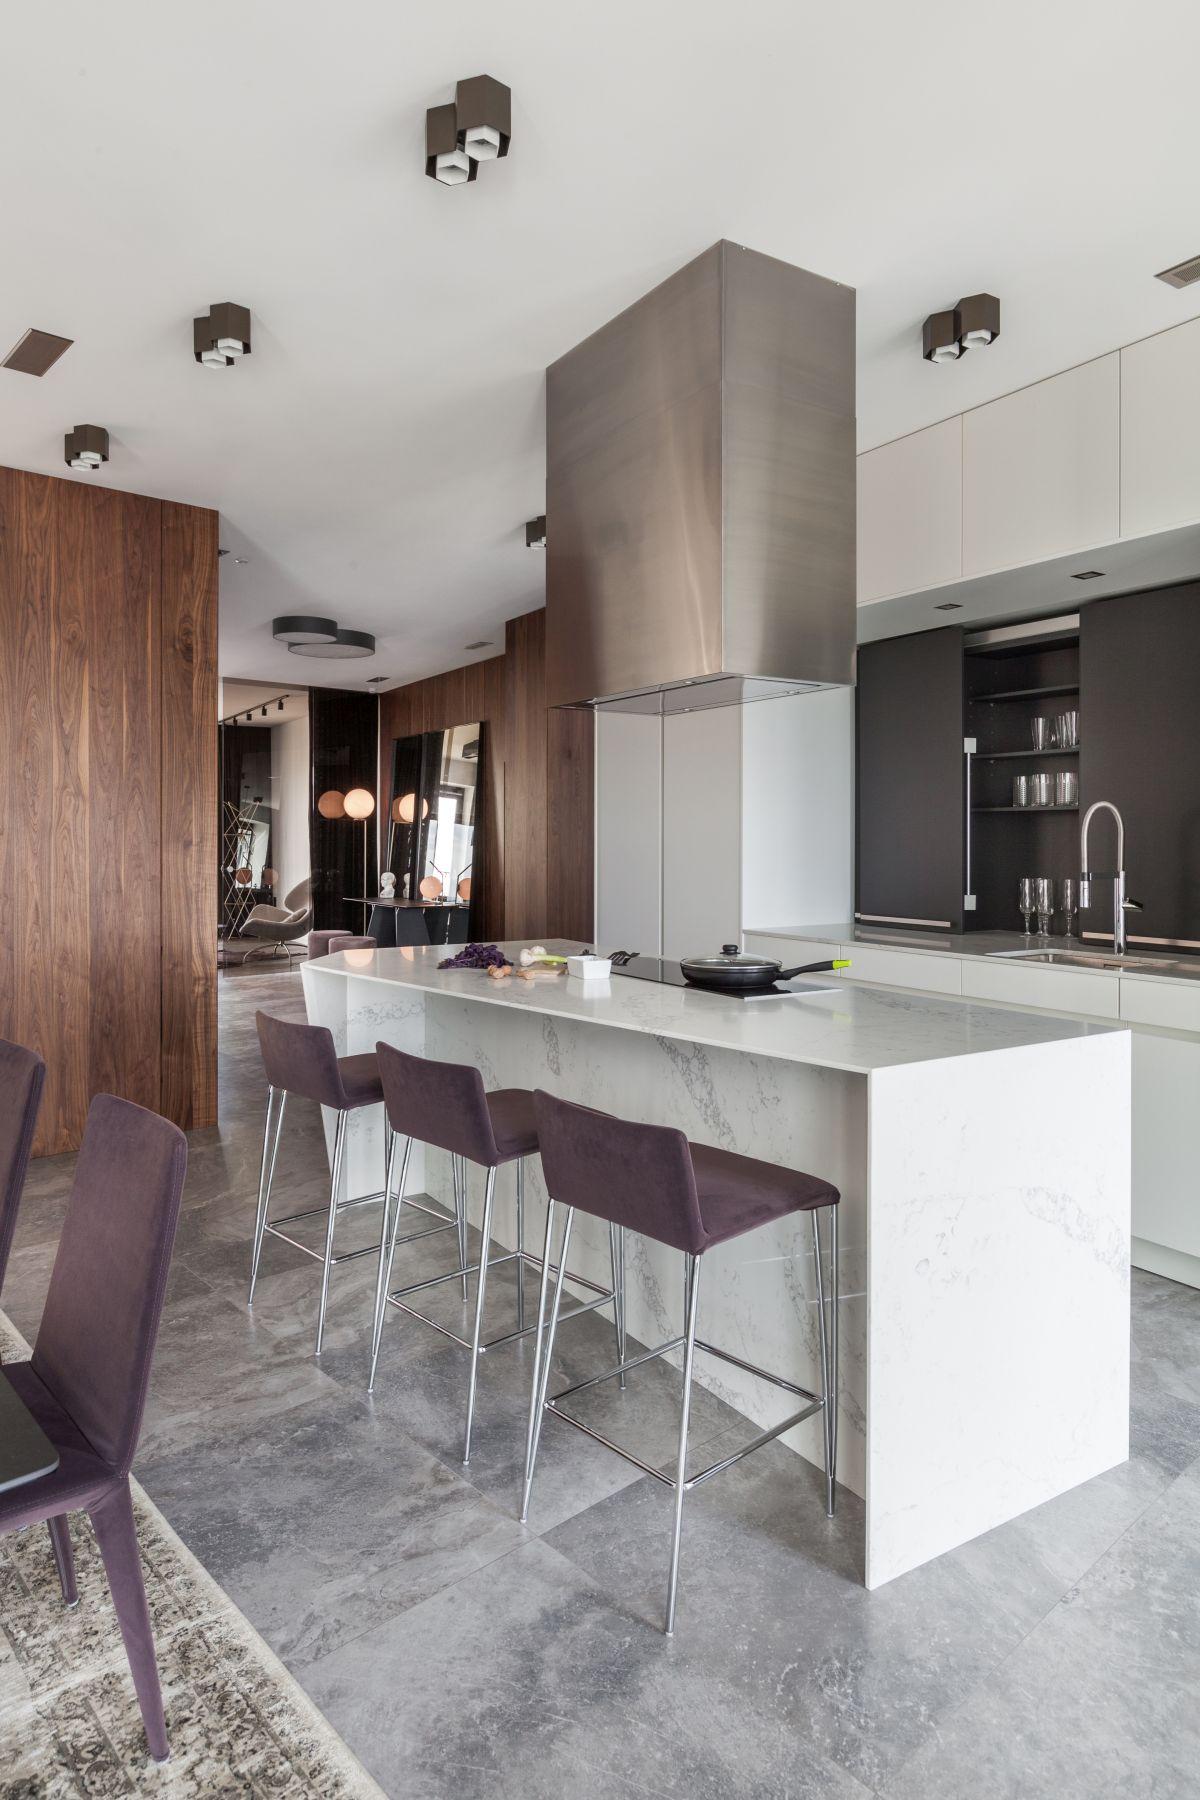 The kitchen island doubles as a bar and the stools match the dining chairs creating a smooth transition